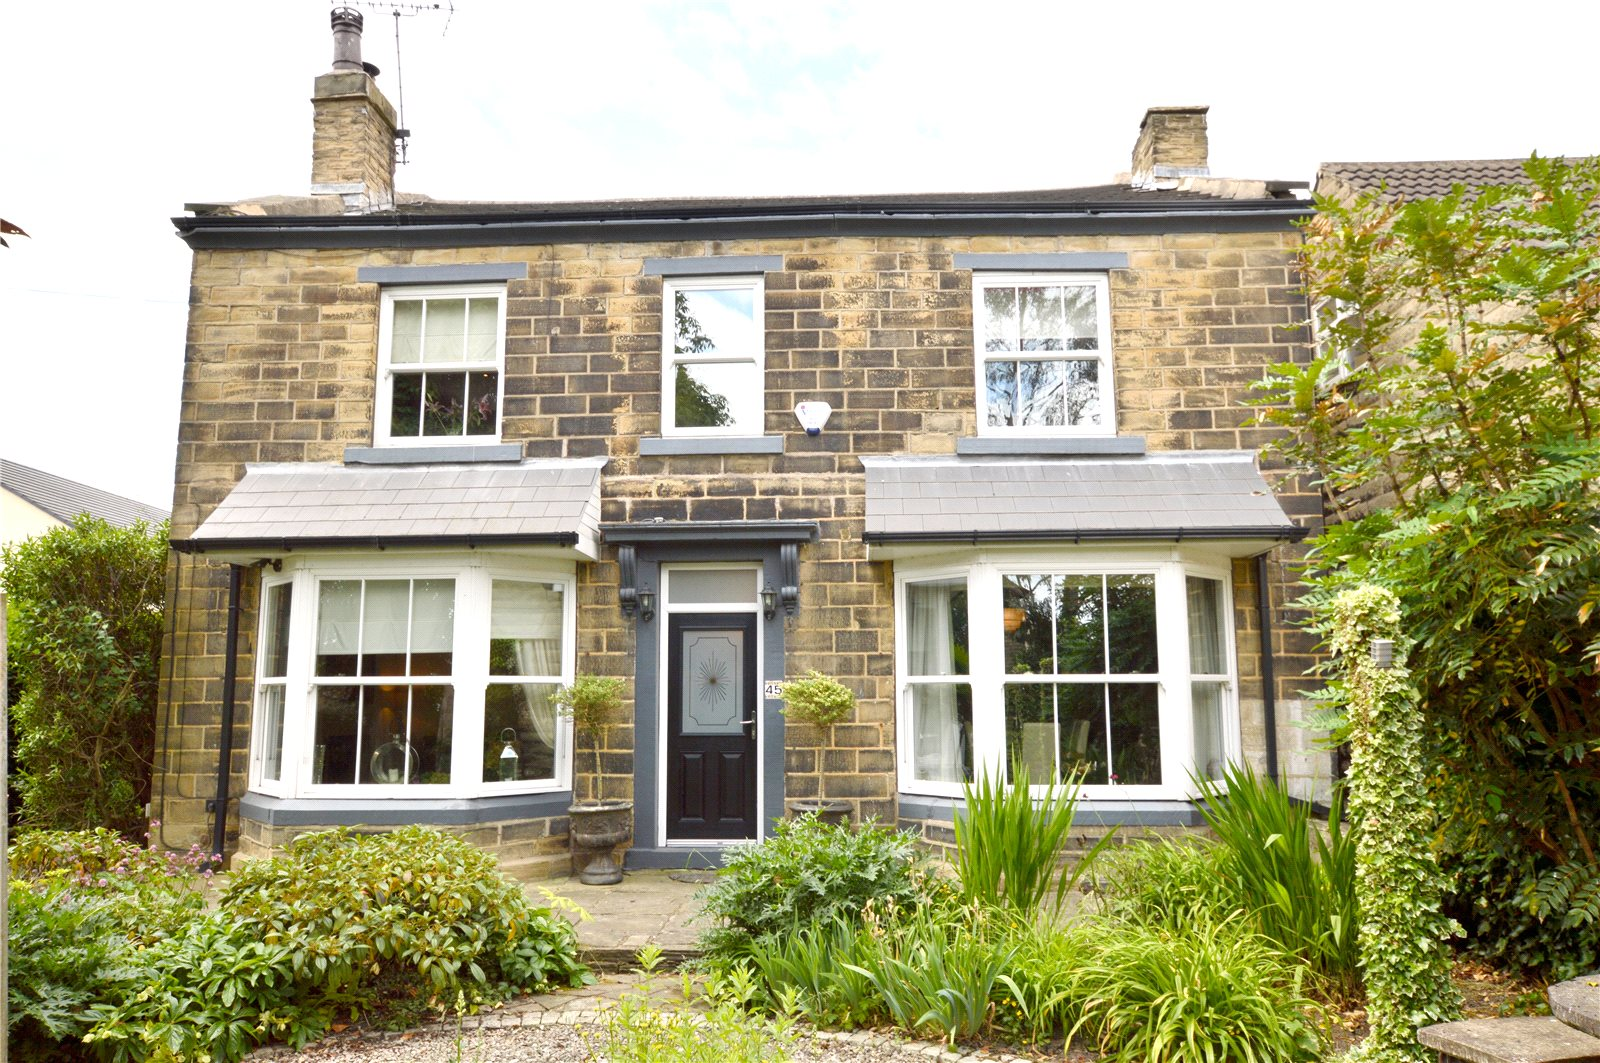 property for sale in Pudsey, exterior of period cottage